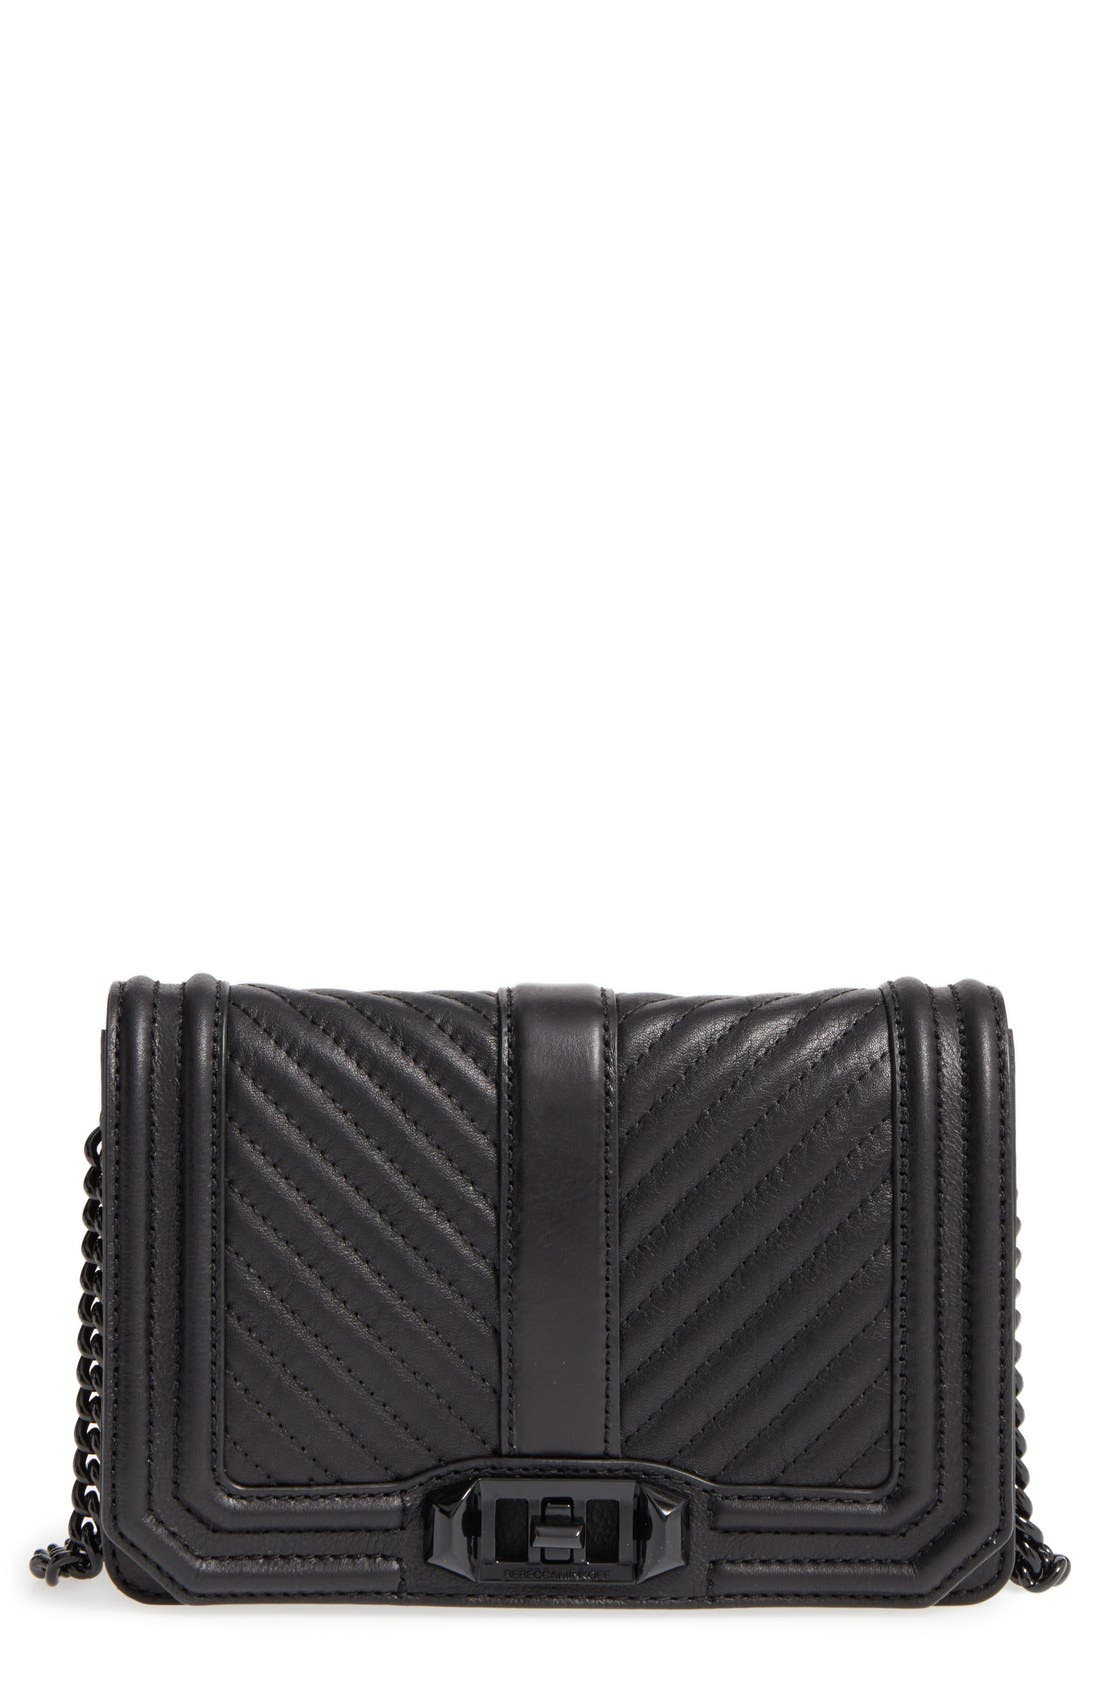 REBECCA MINKOFF, Small Love Leather Crossbody Bag, Main thumbnail 1, color, BLACK/ BLACK HRDWR